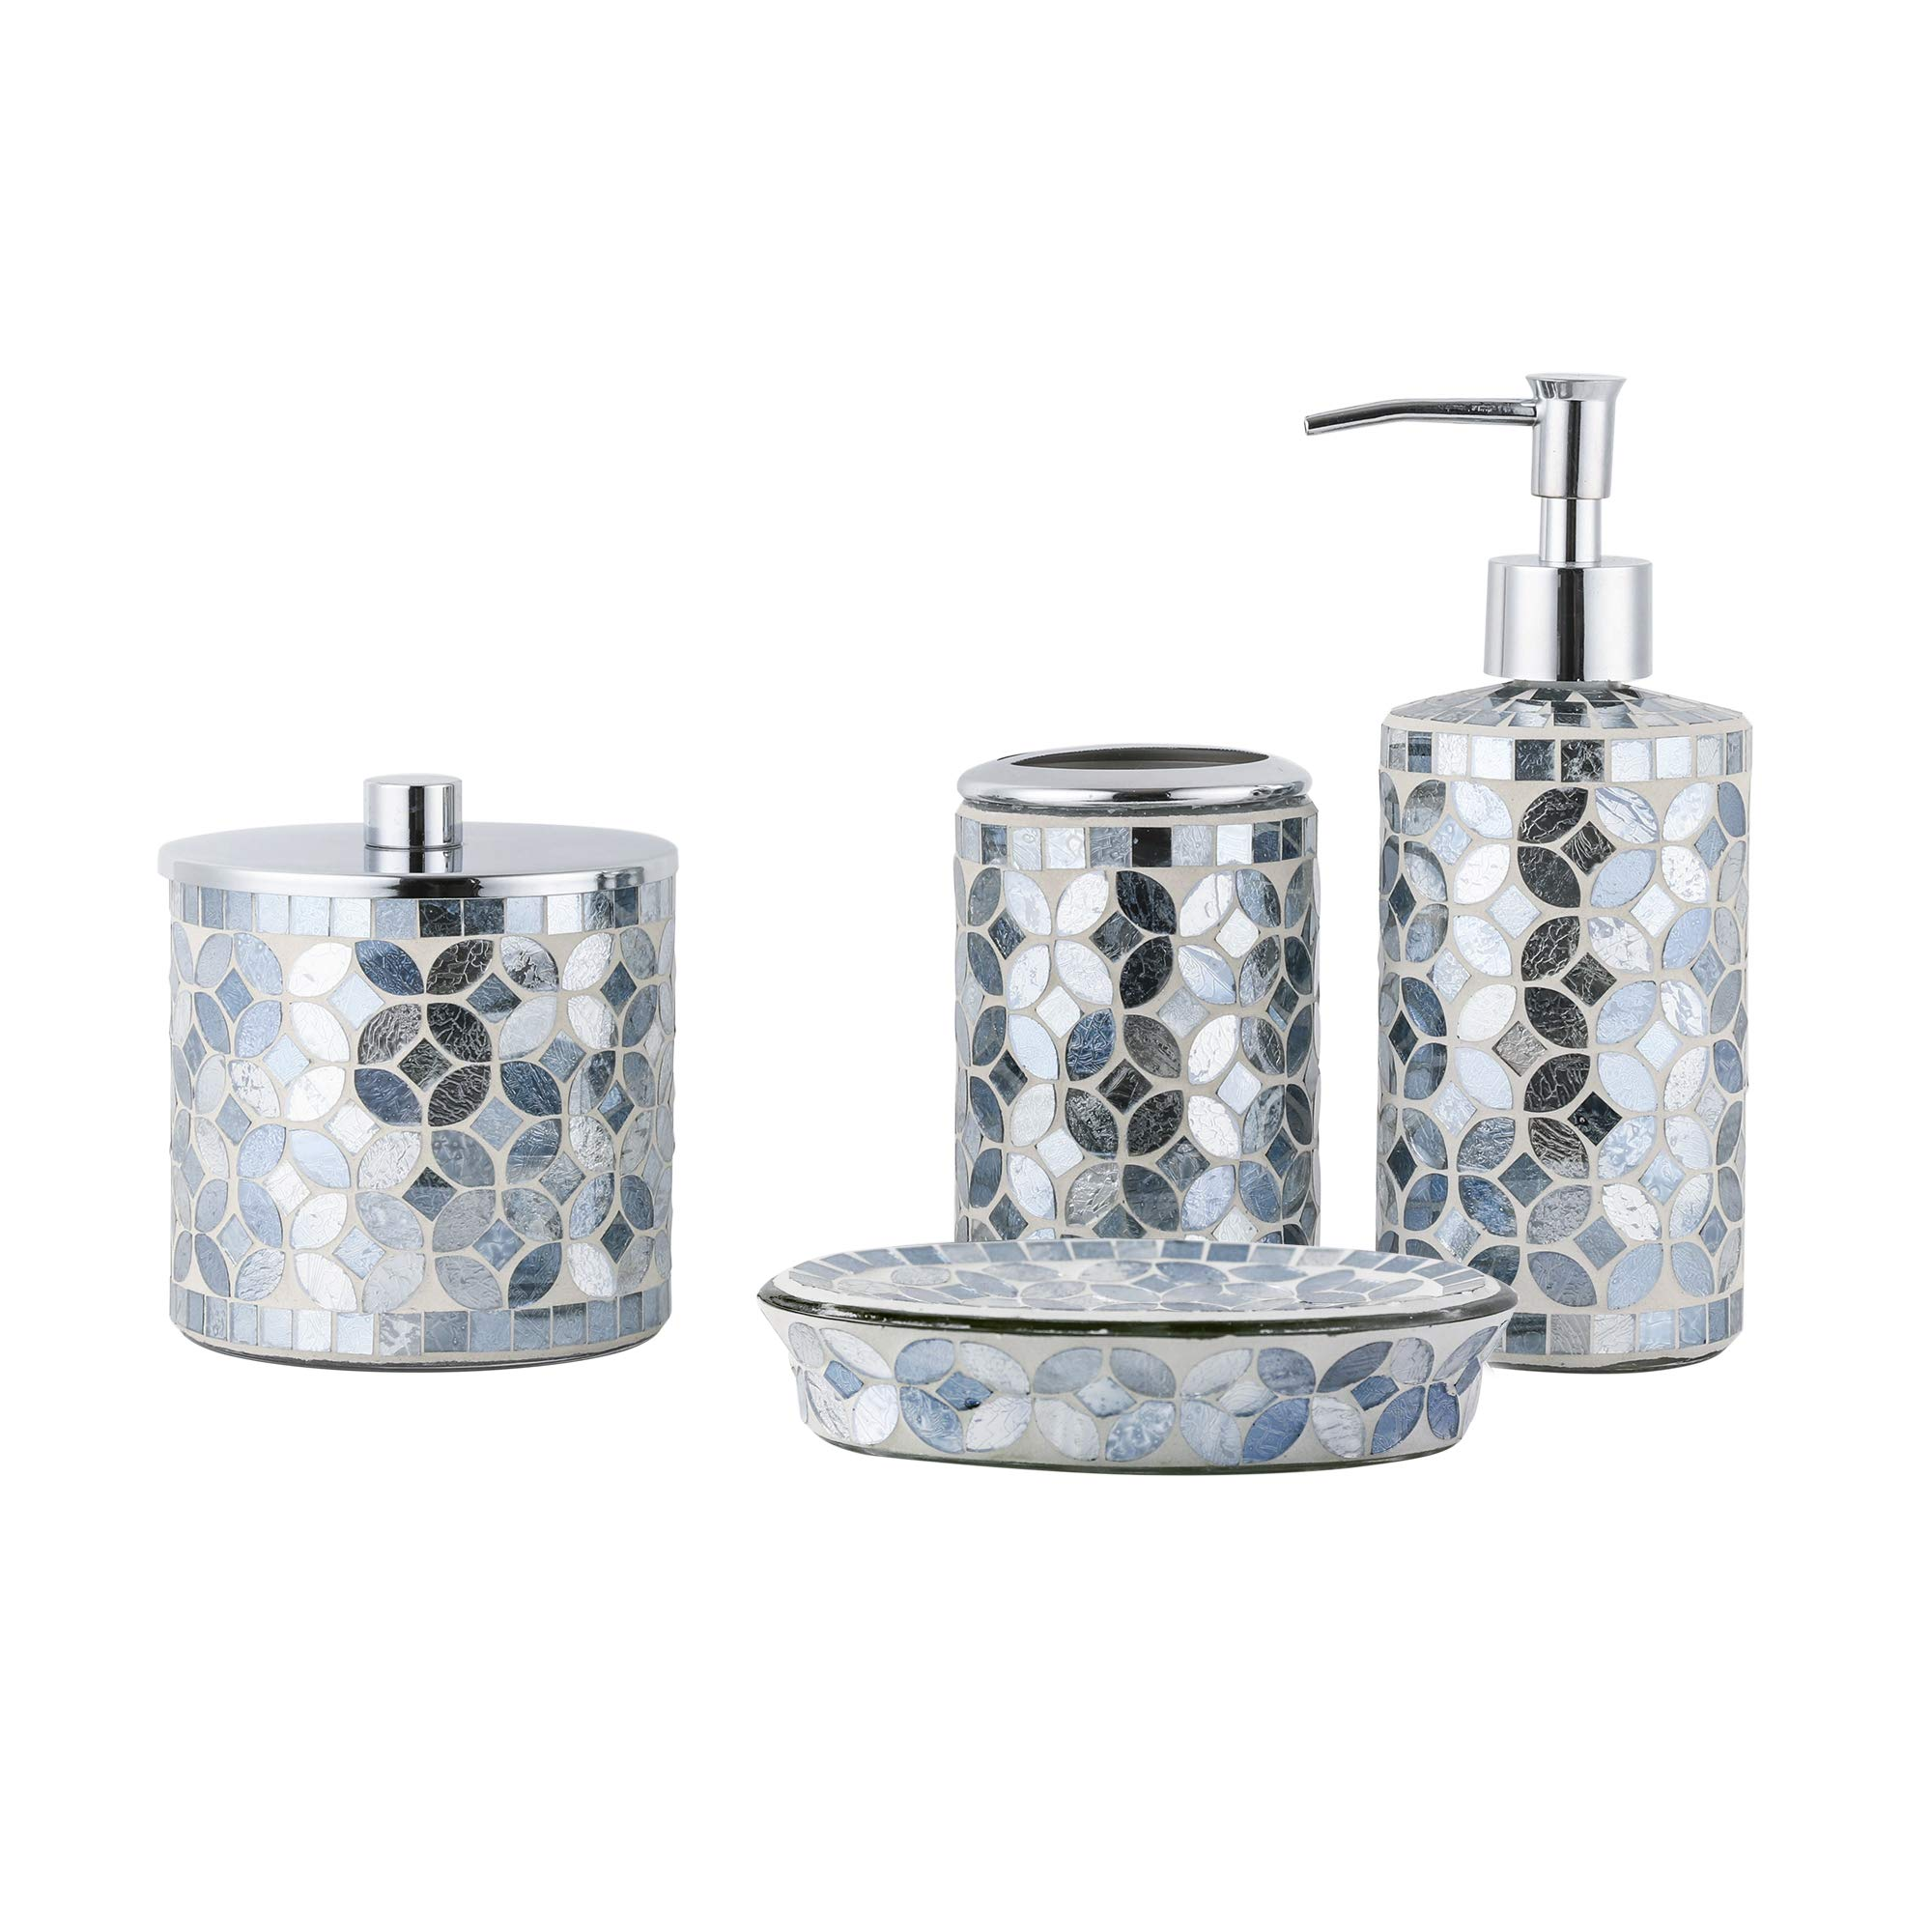 Whole Housewares Bathroom Accessories Set, 4-Piece Glass Mosaic Bath Accessory Completes with Lotion Dispenser/Soap Pump, Cotton Jar, Soap Dish, Toothbrush Holder (Blue Ink)